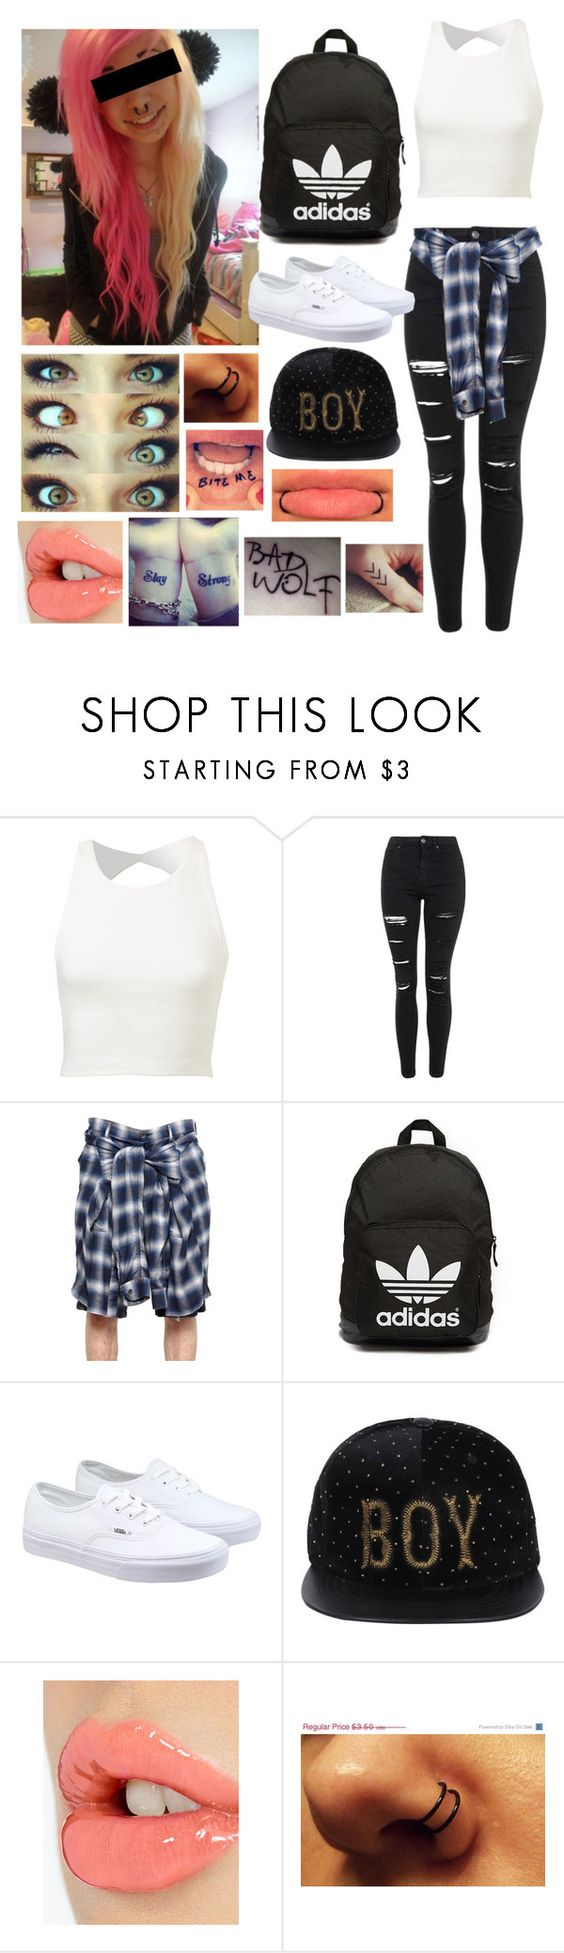 """""""Untitled #462"""" by casparleelovesme123 ❤ liked on Polyvore featuring Topshop, Miharayasuhiro, adidas Originals, Vans, Charlotte Tilbury, women's clothing, women's fashion, women, female and woman"""